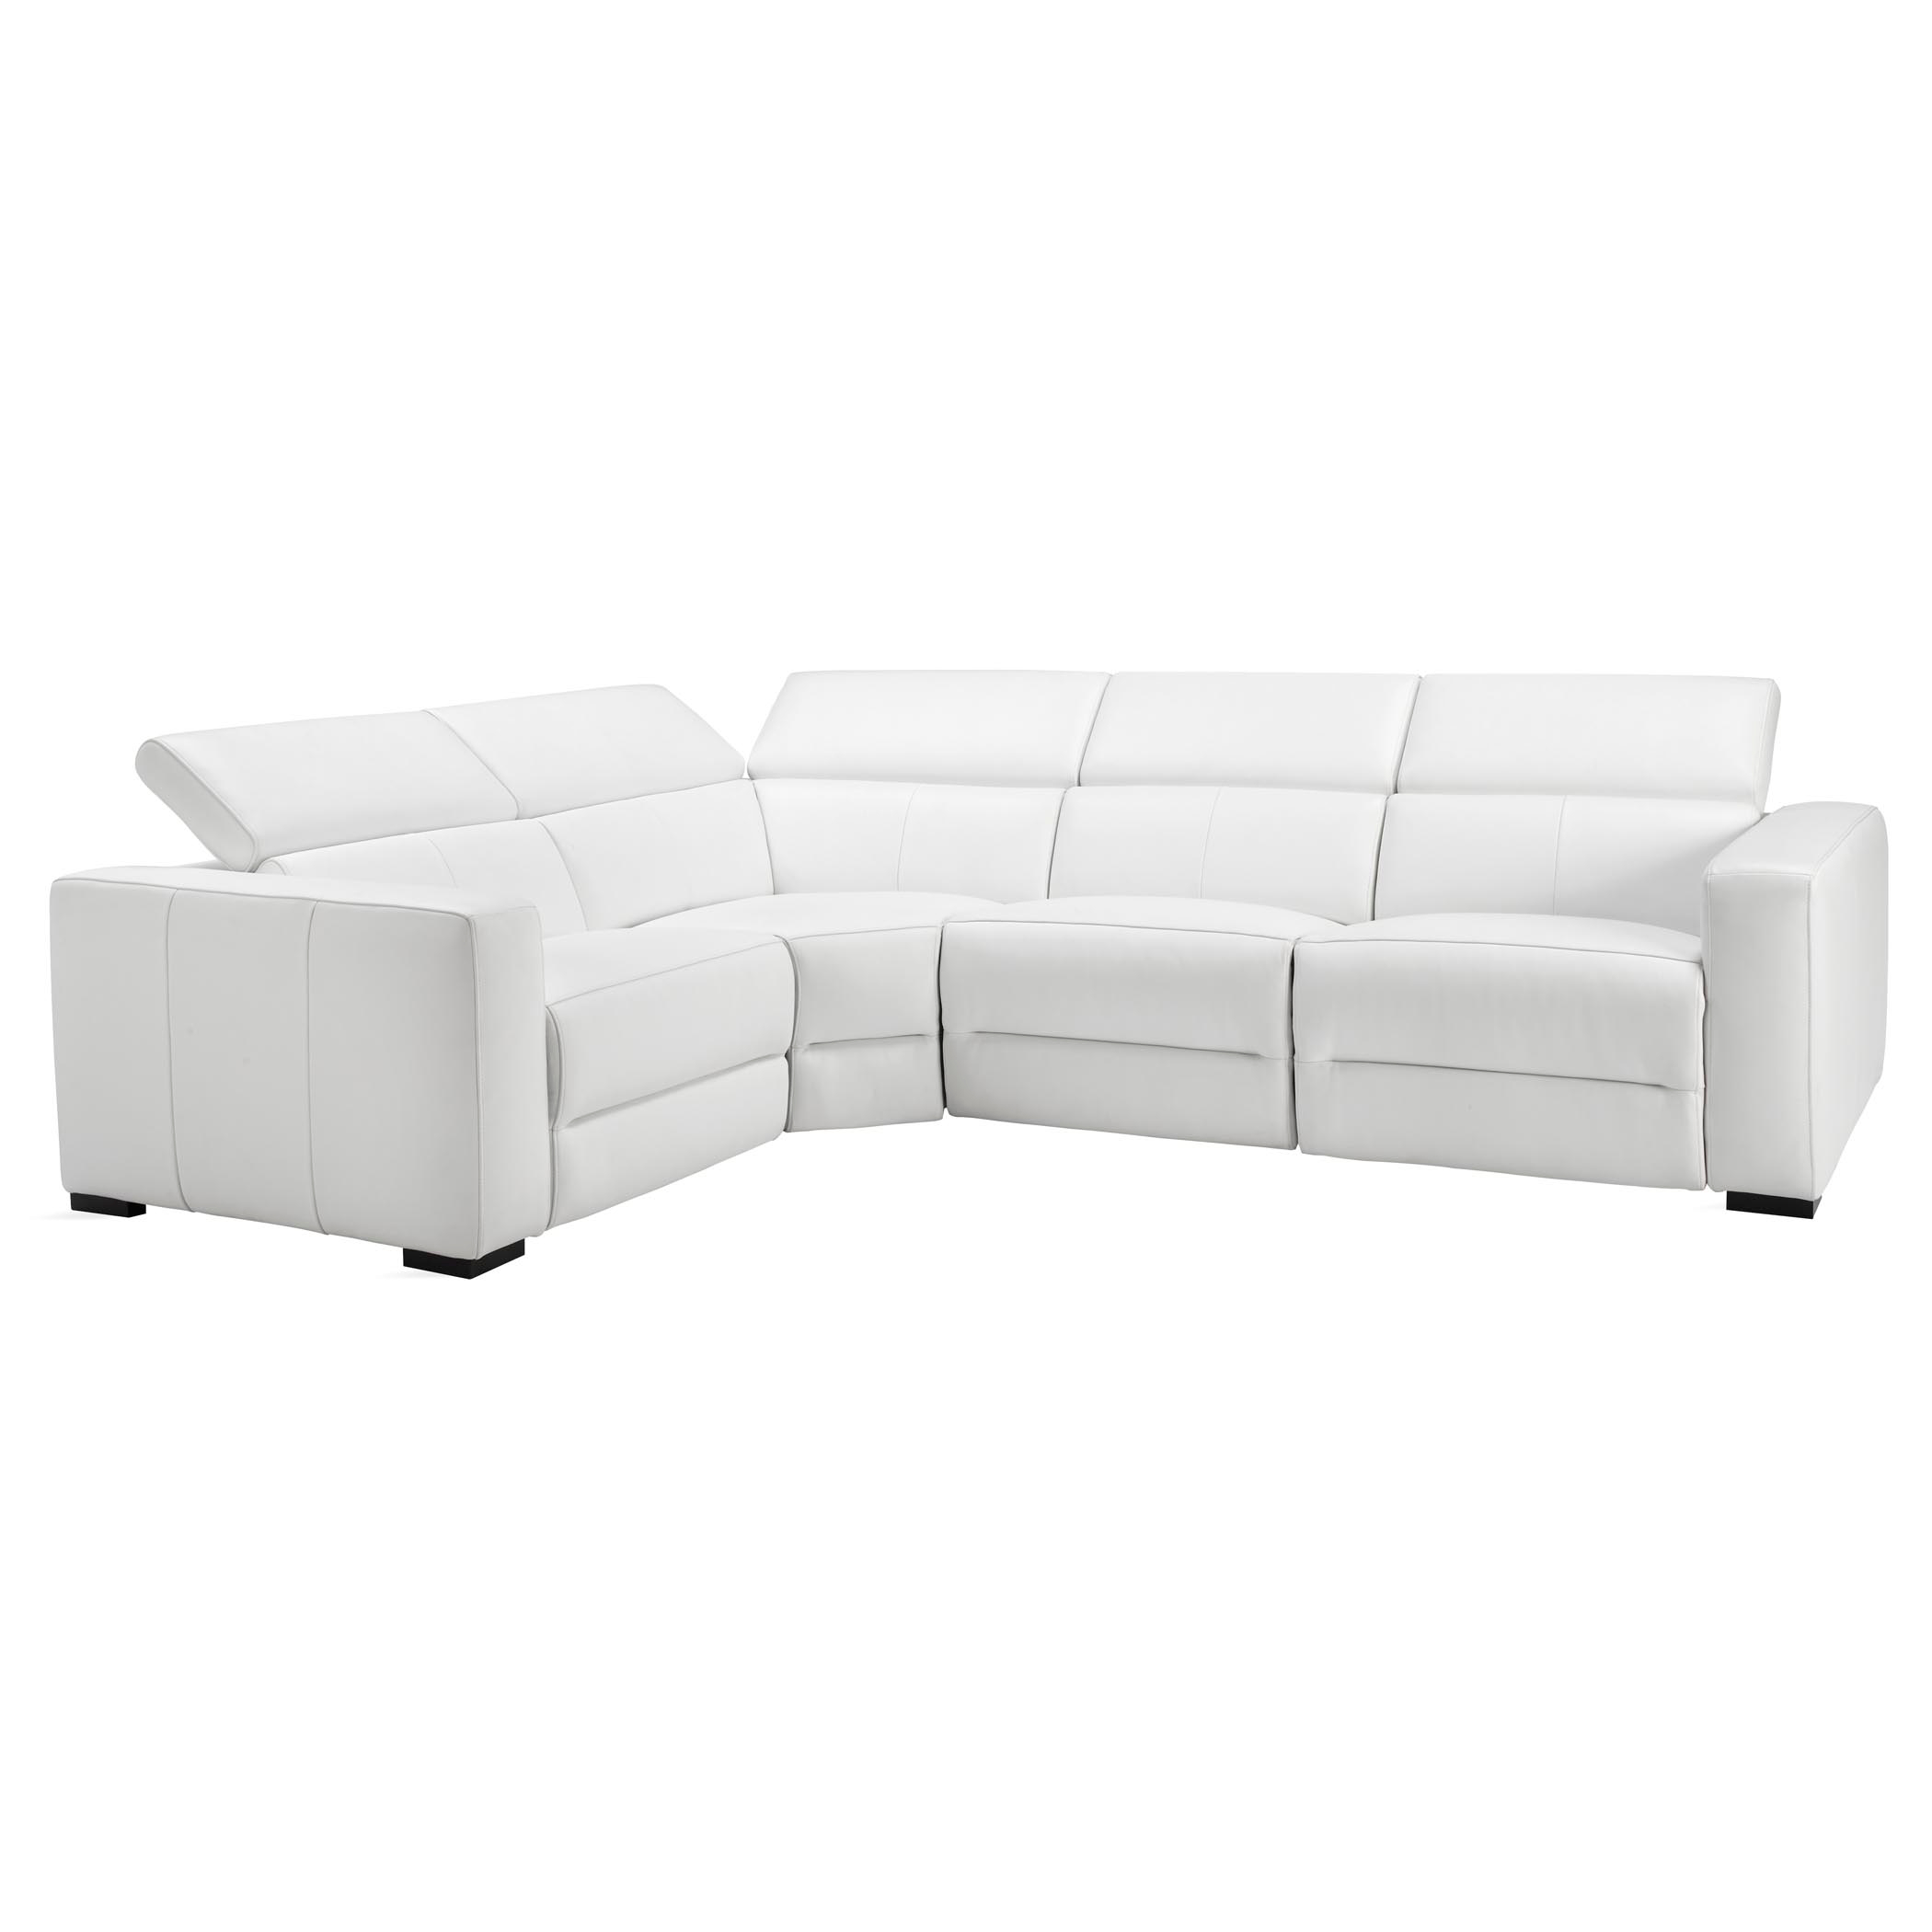 4 pc sectional - left arm facing